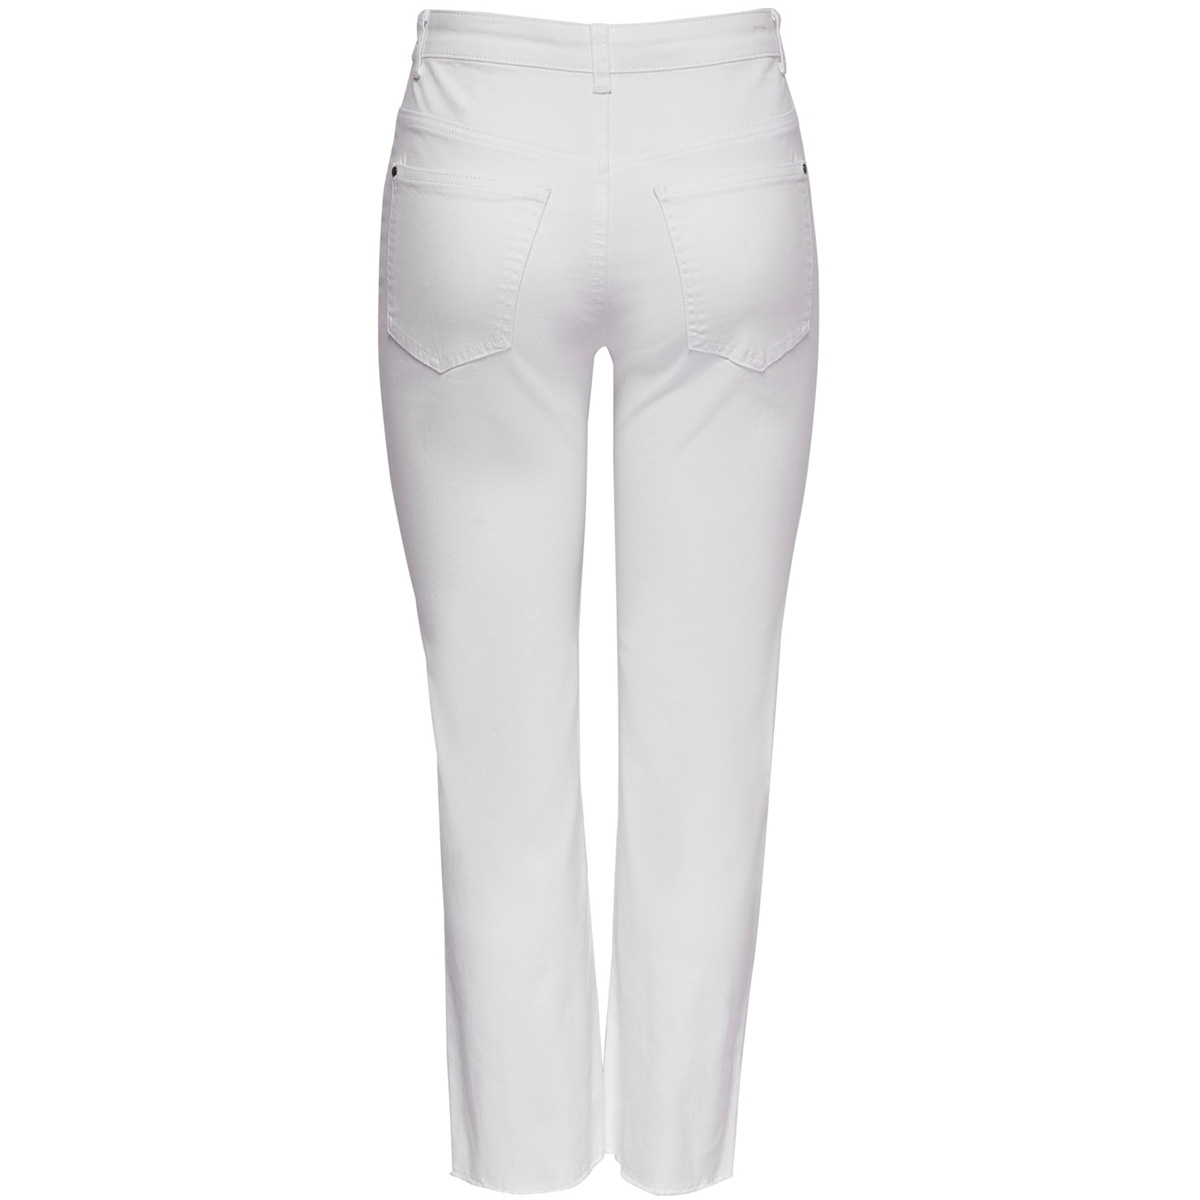 jdynew five straight high raw ank p 15179375 jacqueline de yong jeans white